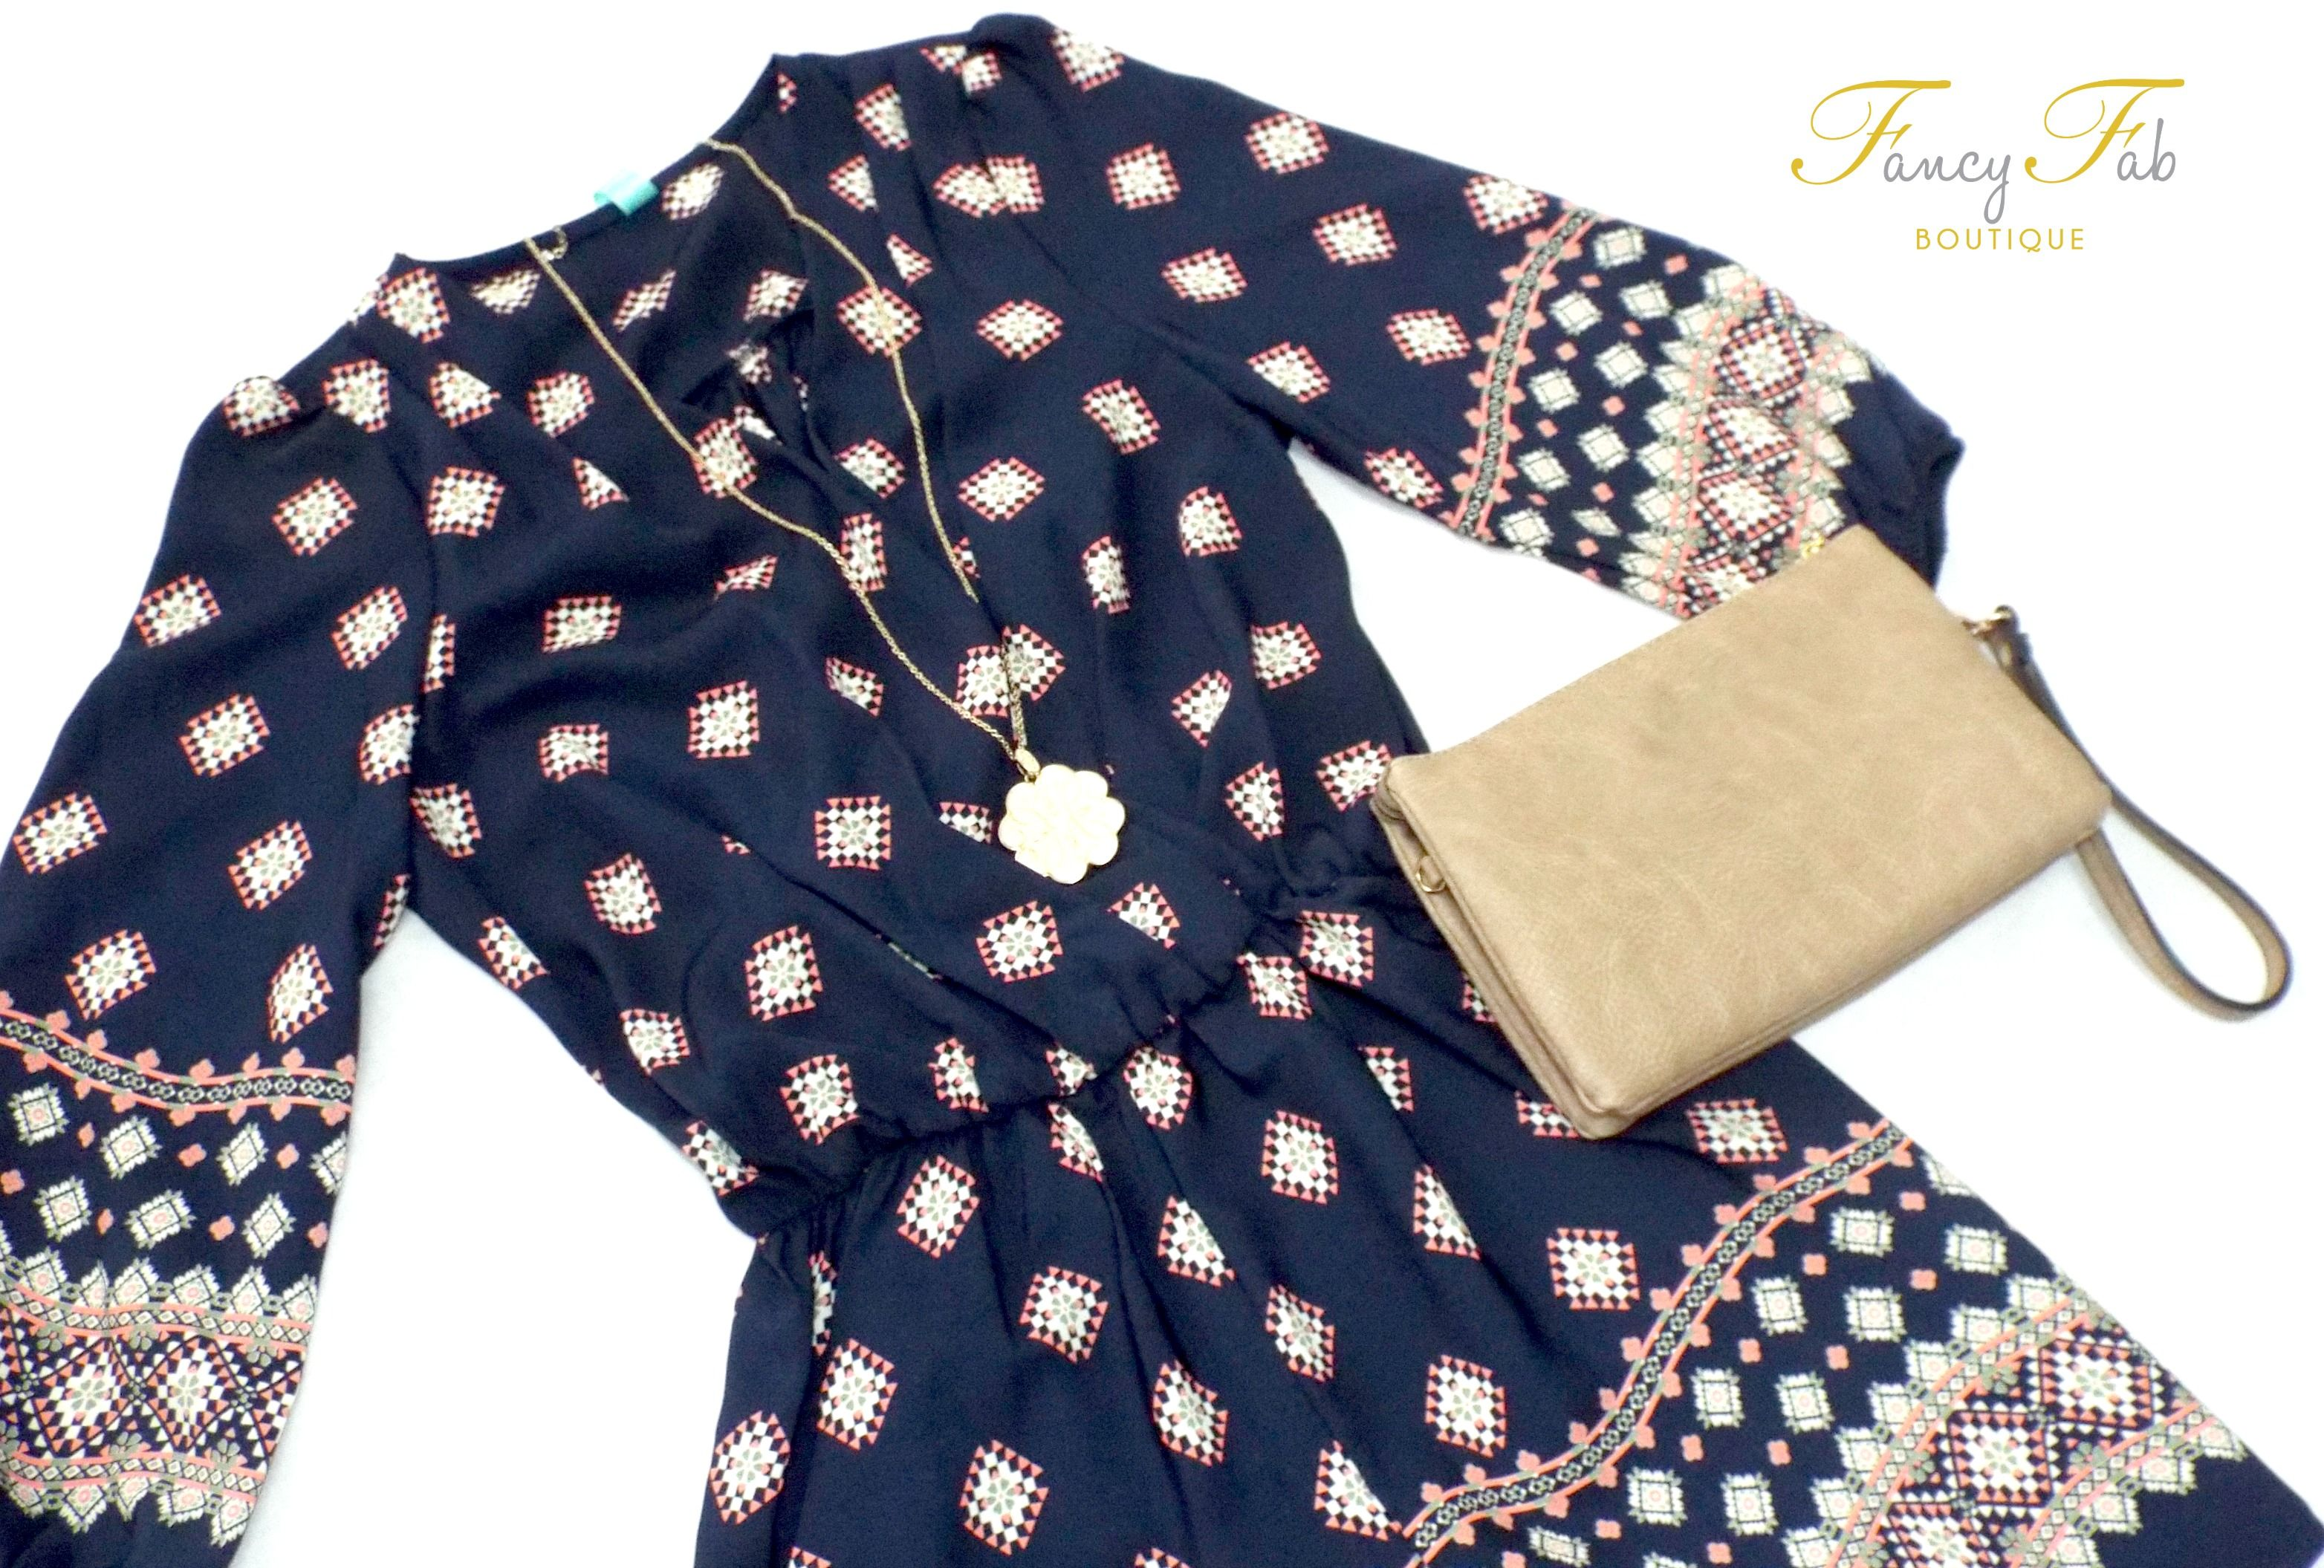 This Forever Yours Romper Goes Live Tomorrow!  How Chic is the Coral Accents on the Navy? Let us know what you Think... Shop the Accessories Here>> http://www.fancyfabboutique.com/#!accessories/czdu #OOTD #Chic #Romper #NewArrival